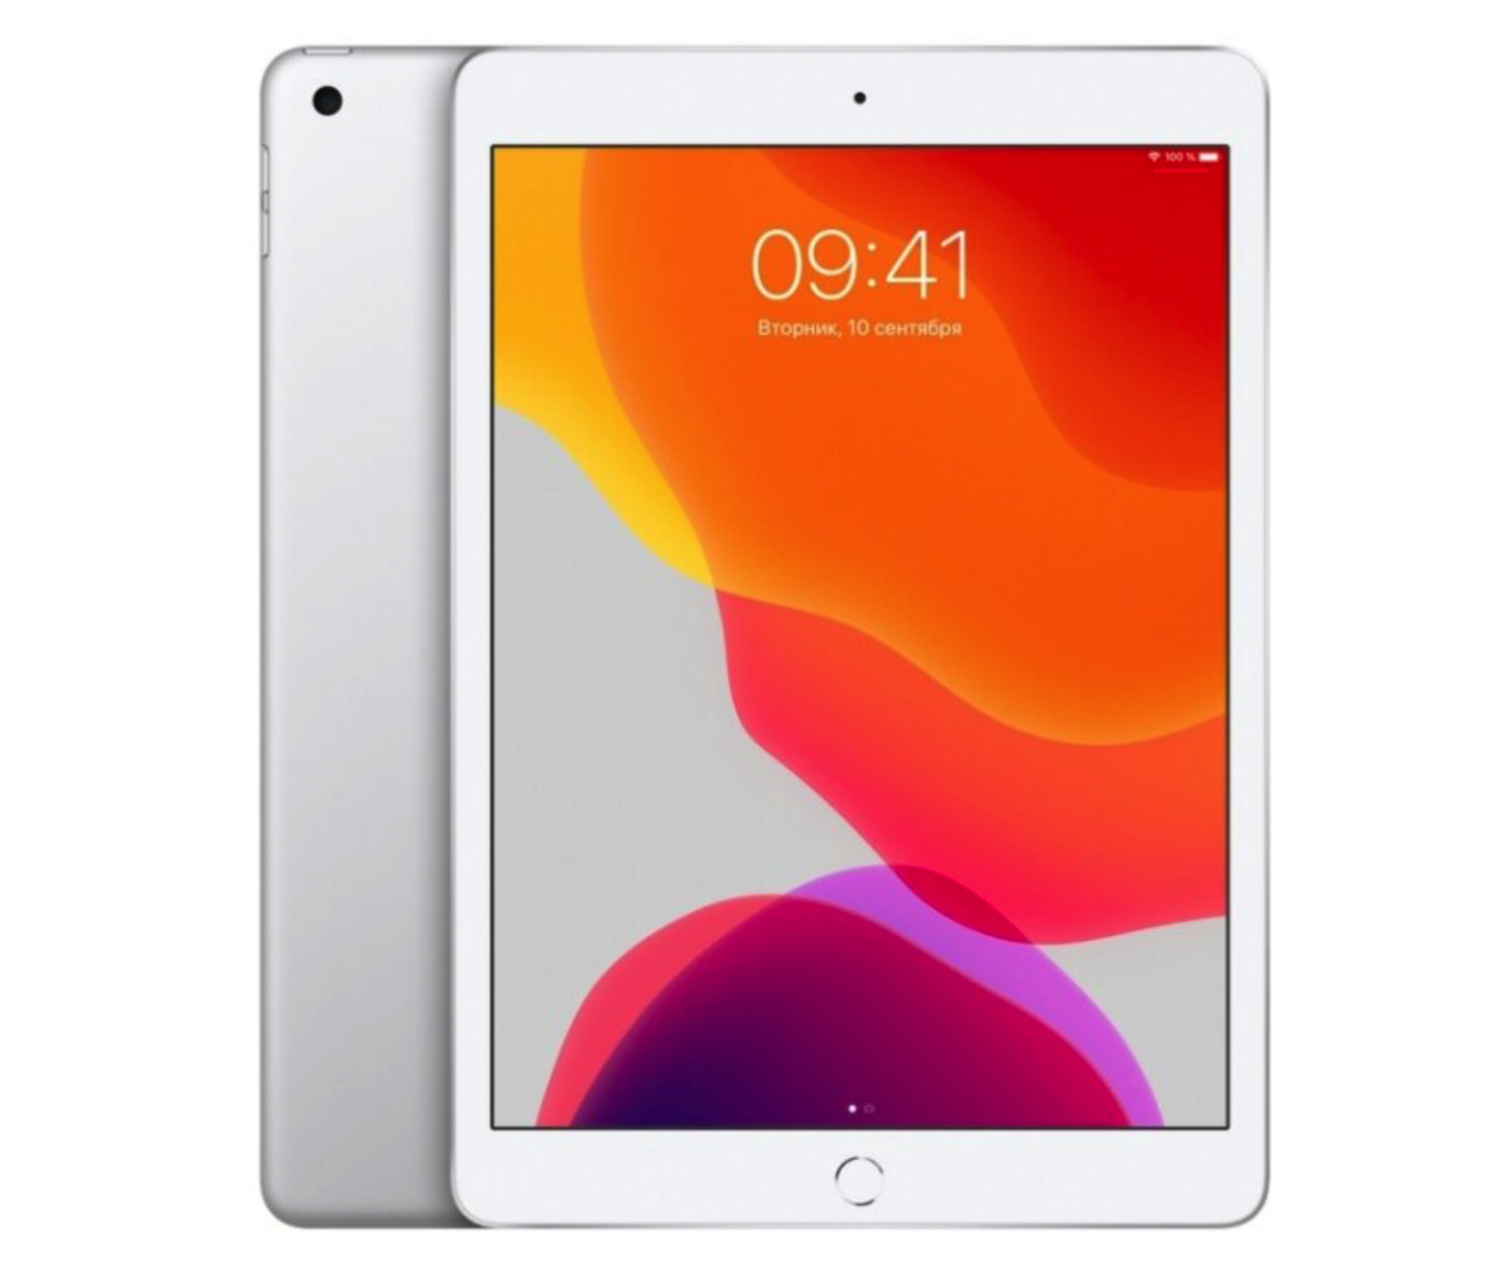 Планшет Apple iPad (2019) 128Gb Wi-Fi + Cellular Silver (серебристый) MW6F2RU/A РОСТЕСТ